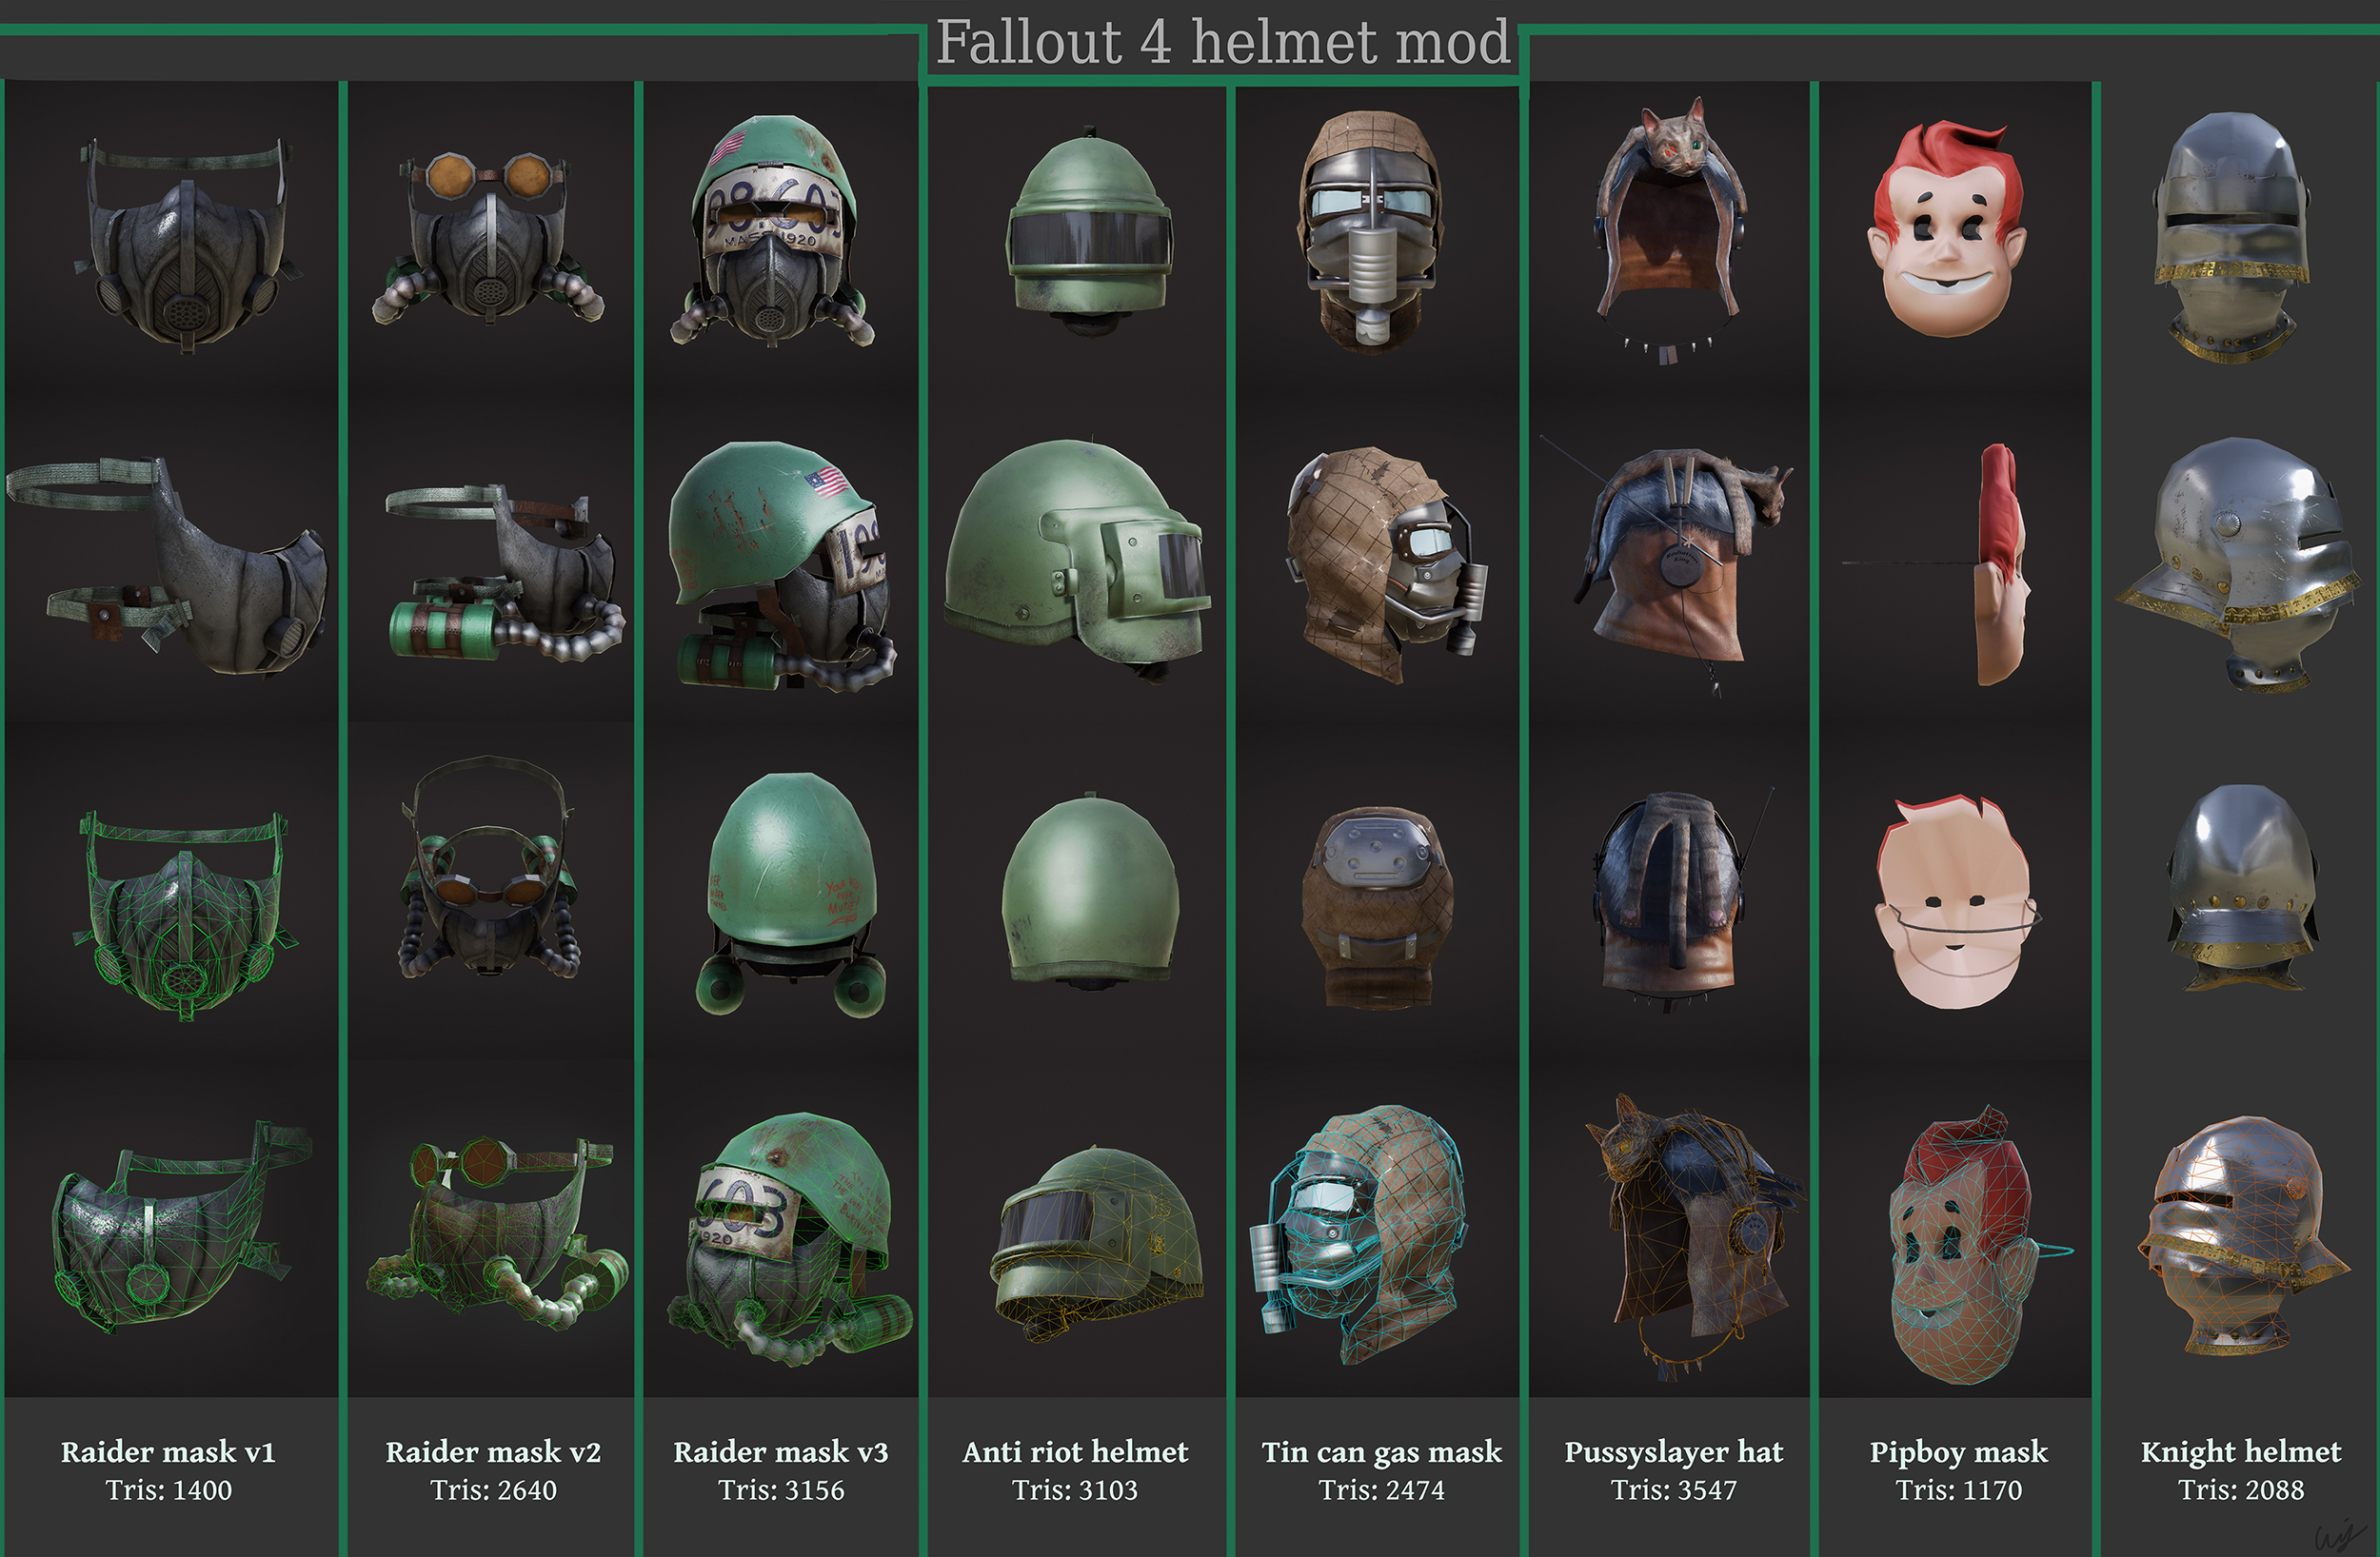 The Headpiece Dispatcher - new raider helmets and masks at Fallout ...